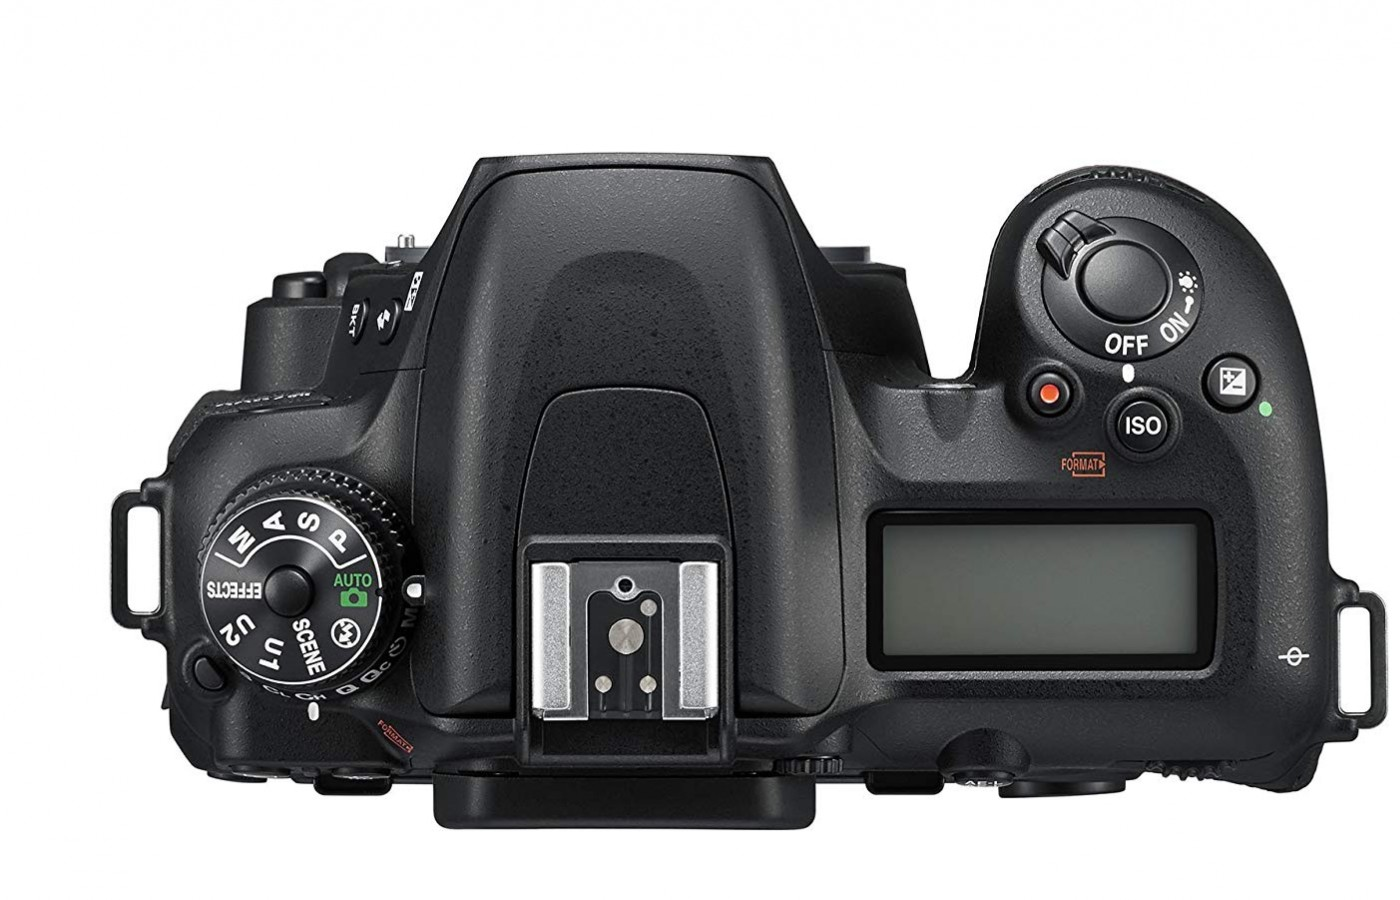 The finder is as beautiful, sharp, and big as any APS-C camera.